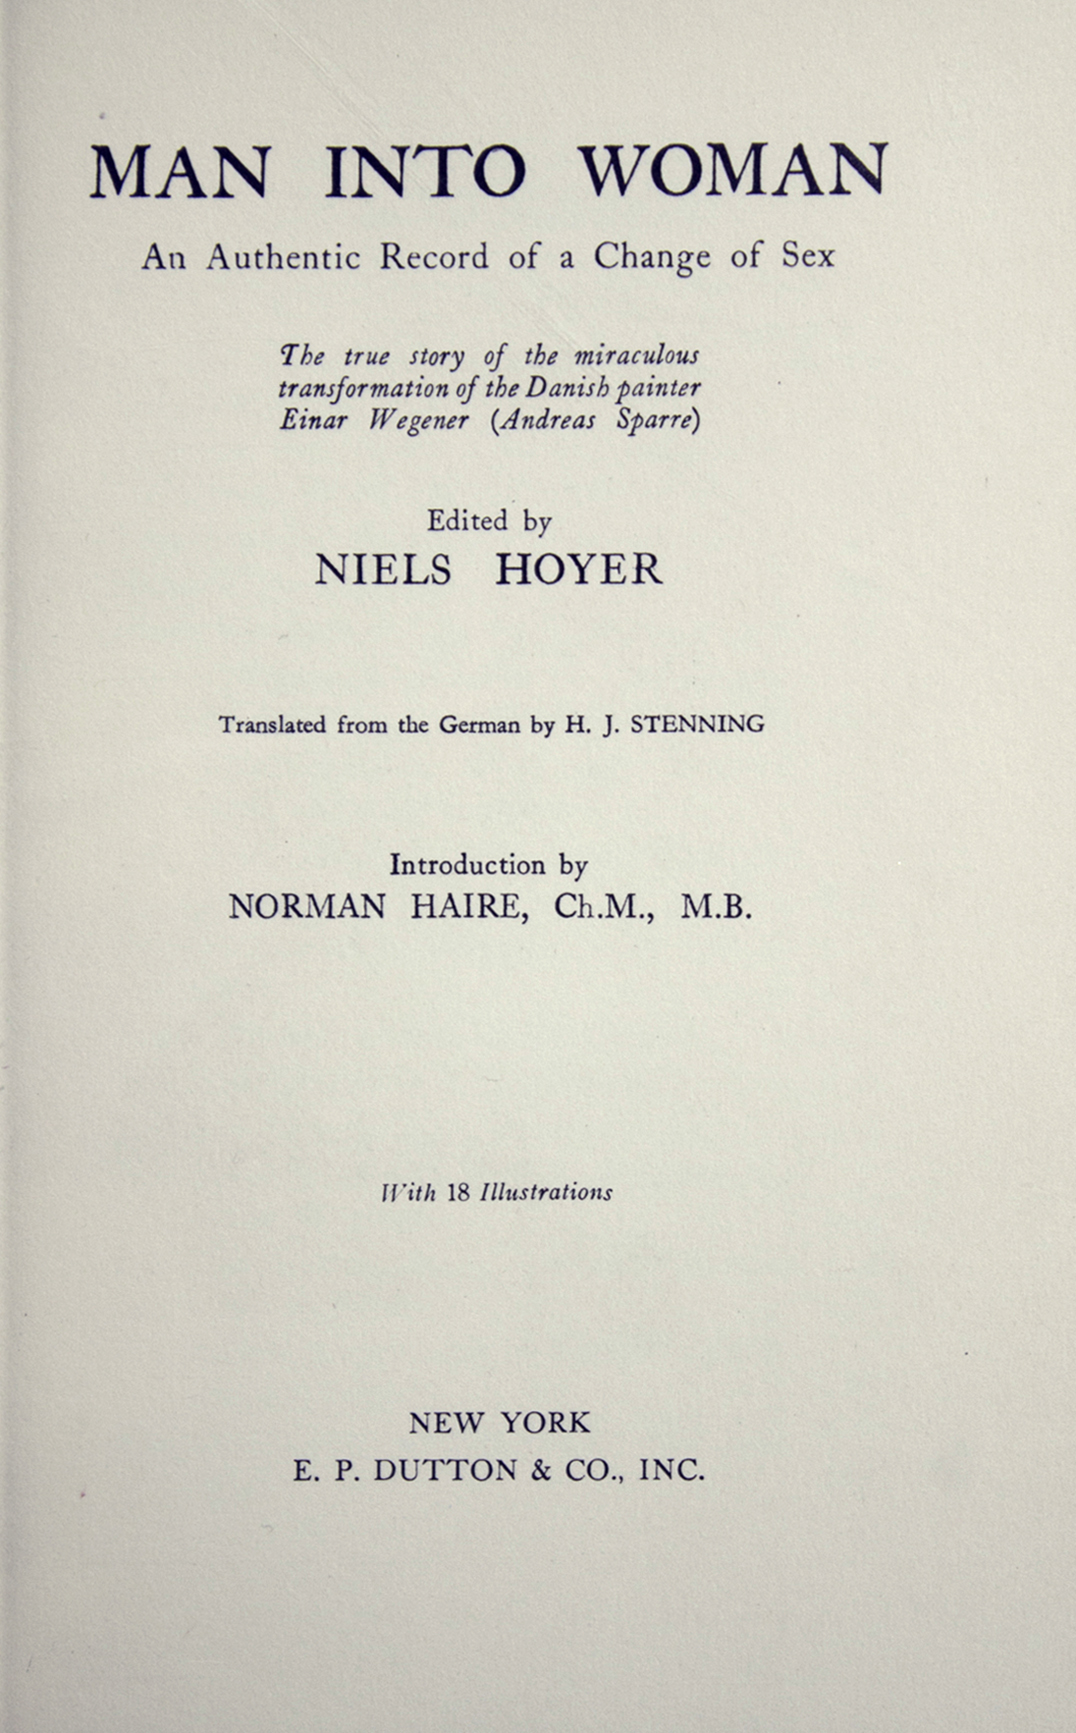 Title page from Man Into Woman, which identifies only the name of the editor.